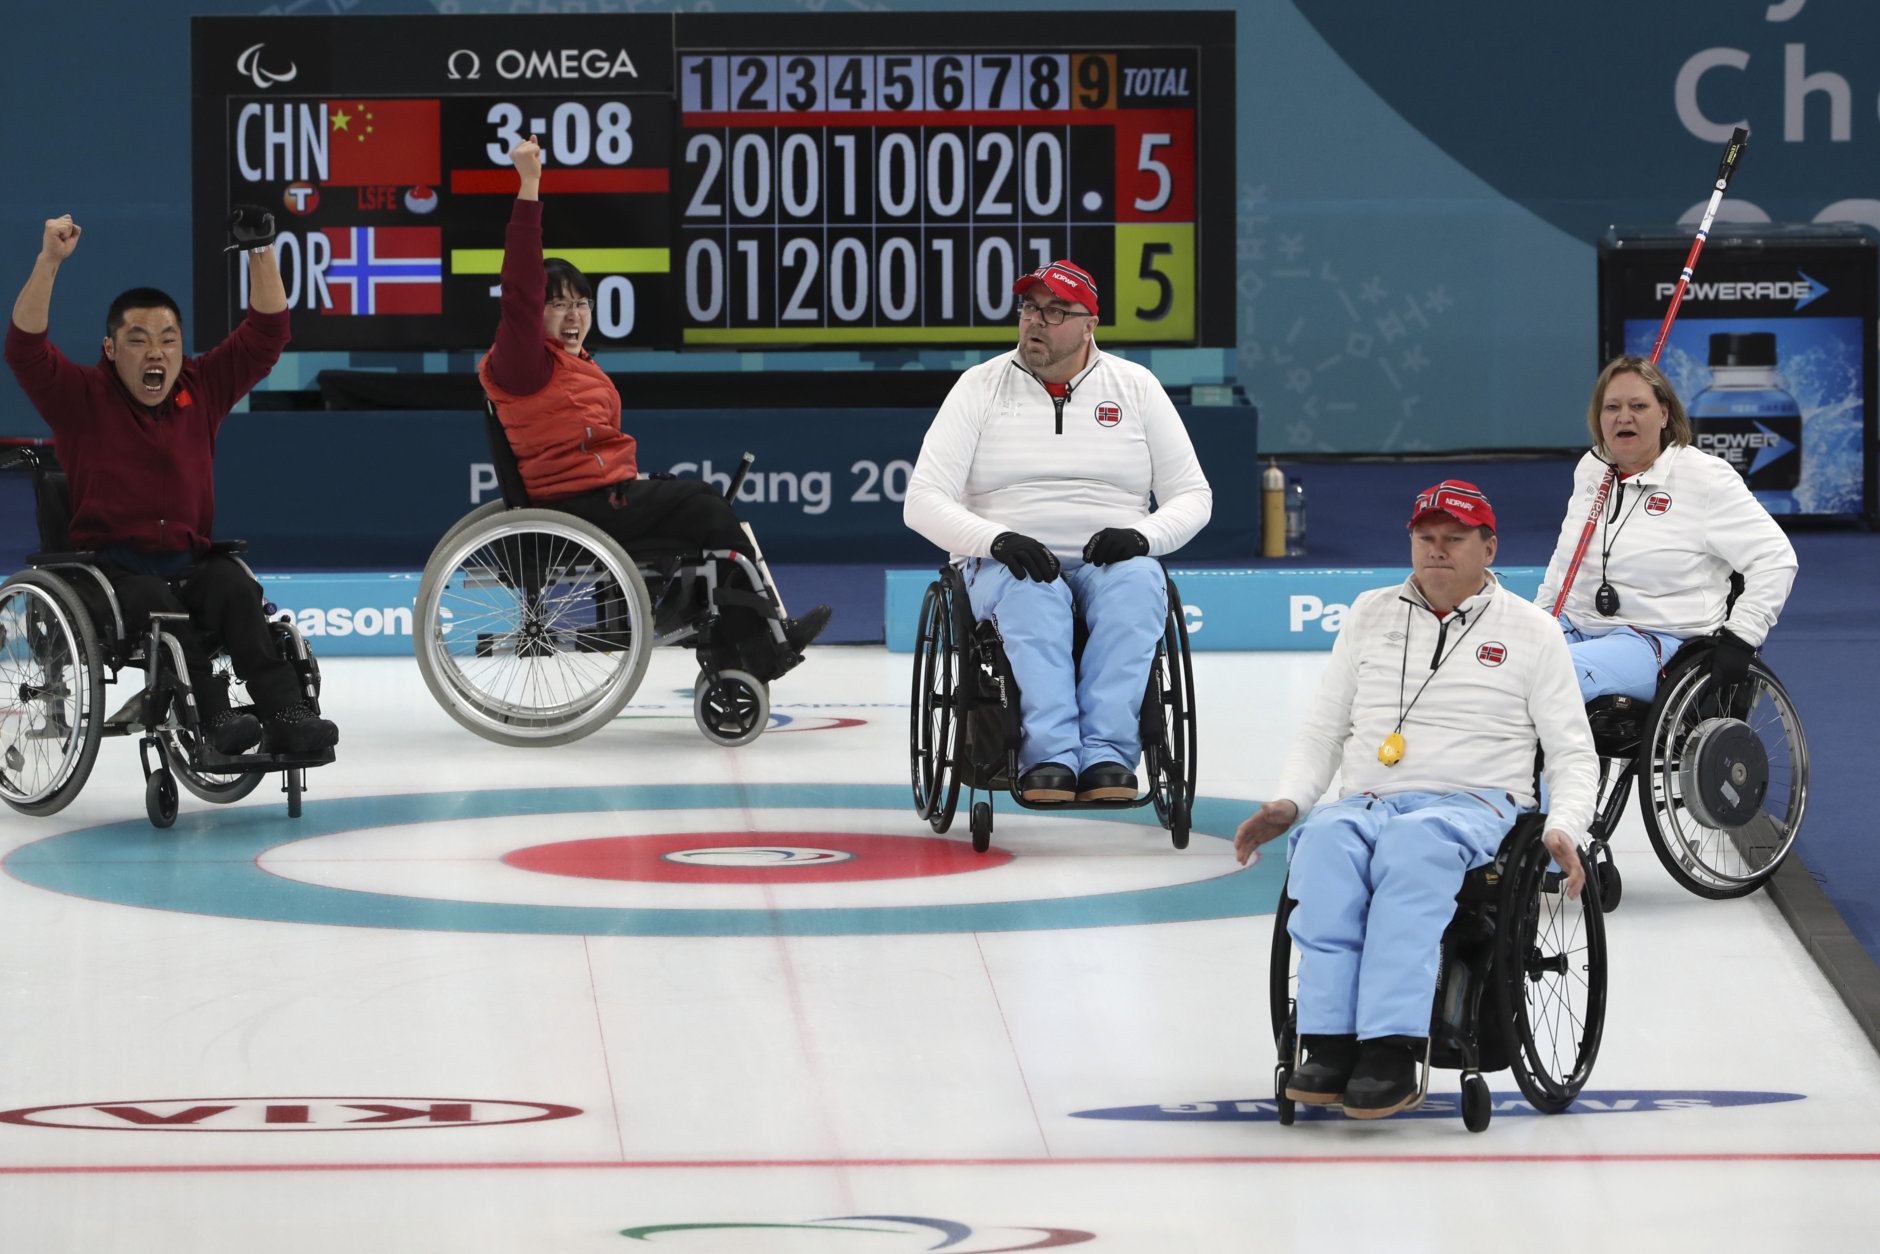 China's Liu Wei, left and Wang Meng, second from left celebrate defeating Norway's Sissel Loechen, right; Rune Lorensten, second from right and Ole Frederik Syversen, third from right during the Wheelchair Curling gold medal match for the 2018 Winter Paralympics at the Gangneung Curling Centre in Gangneung, South Korea, Saturday, March 17, 2018.(AP Photo/Ng Han Guan)